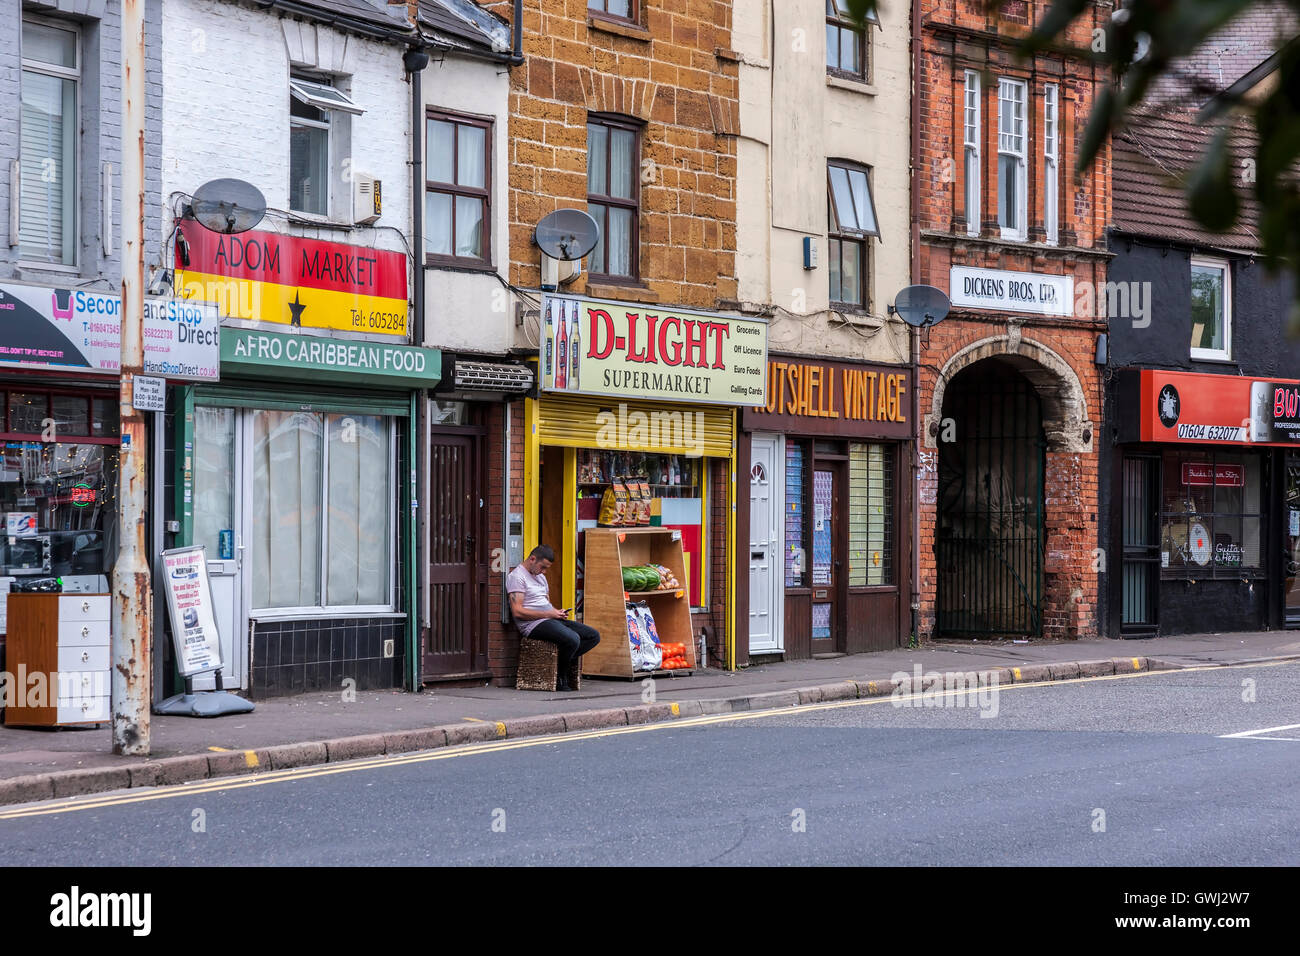 Shopfront's on Kettering road Northampton early morning. - Stock Image